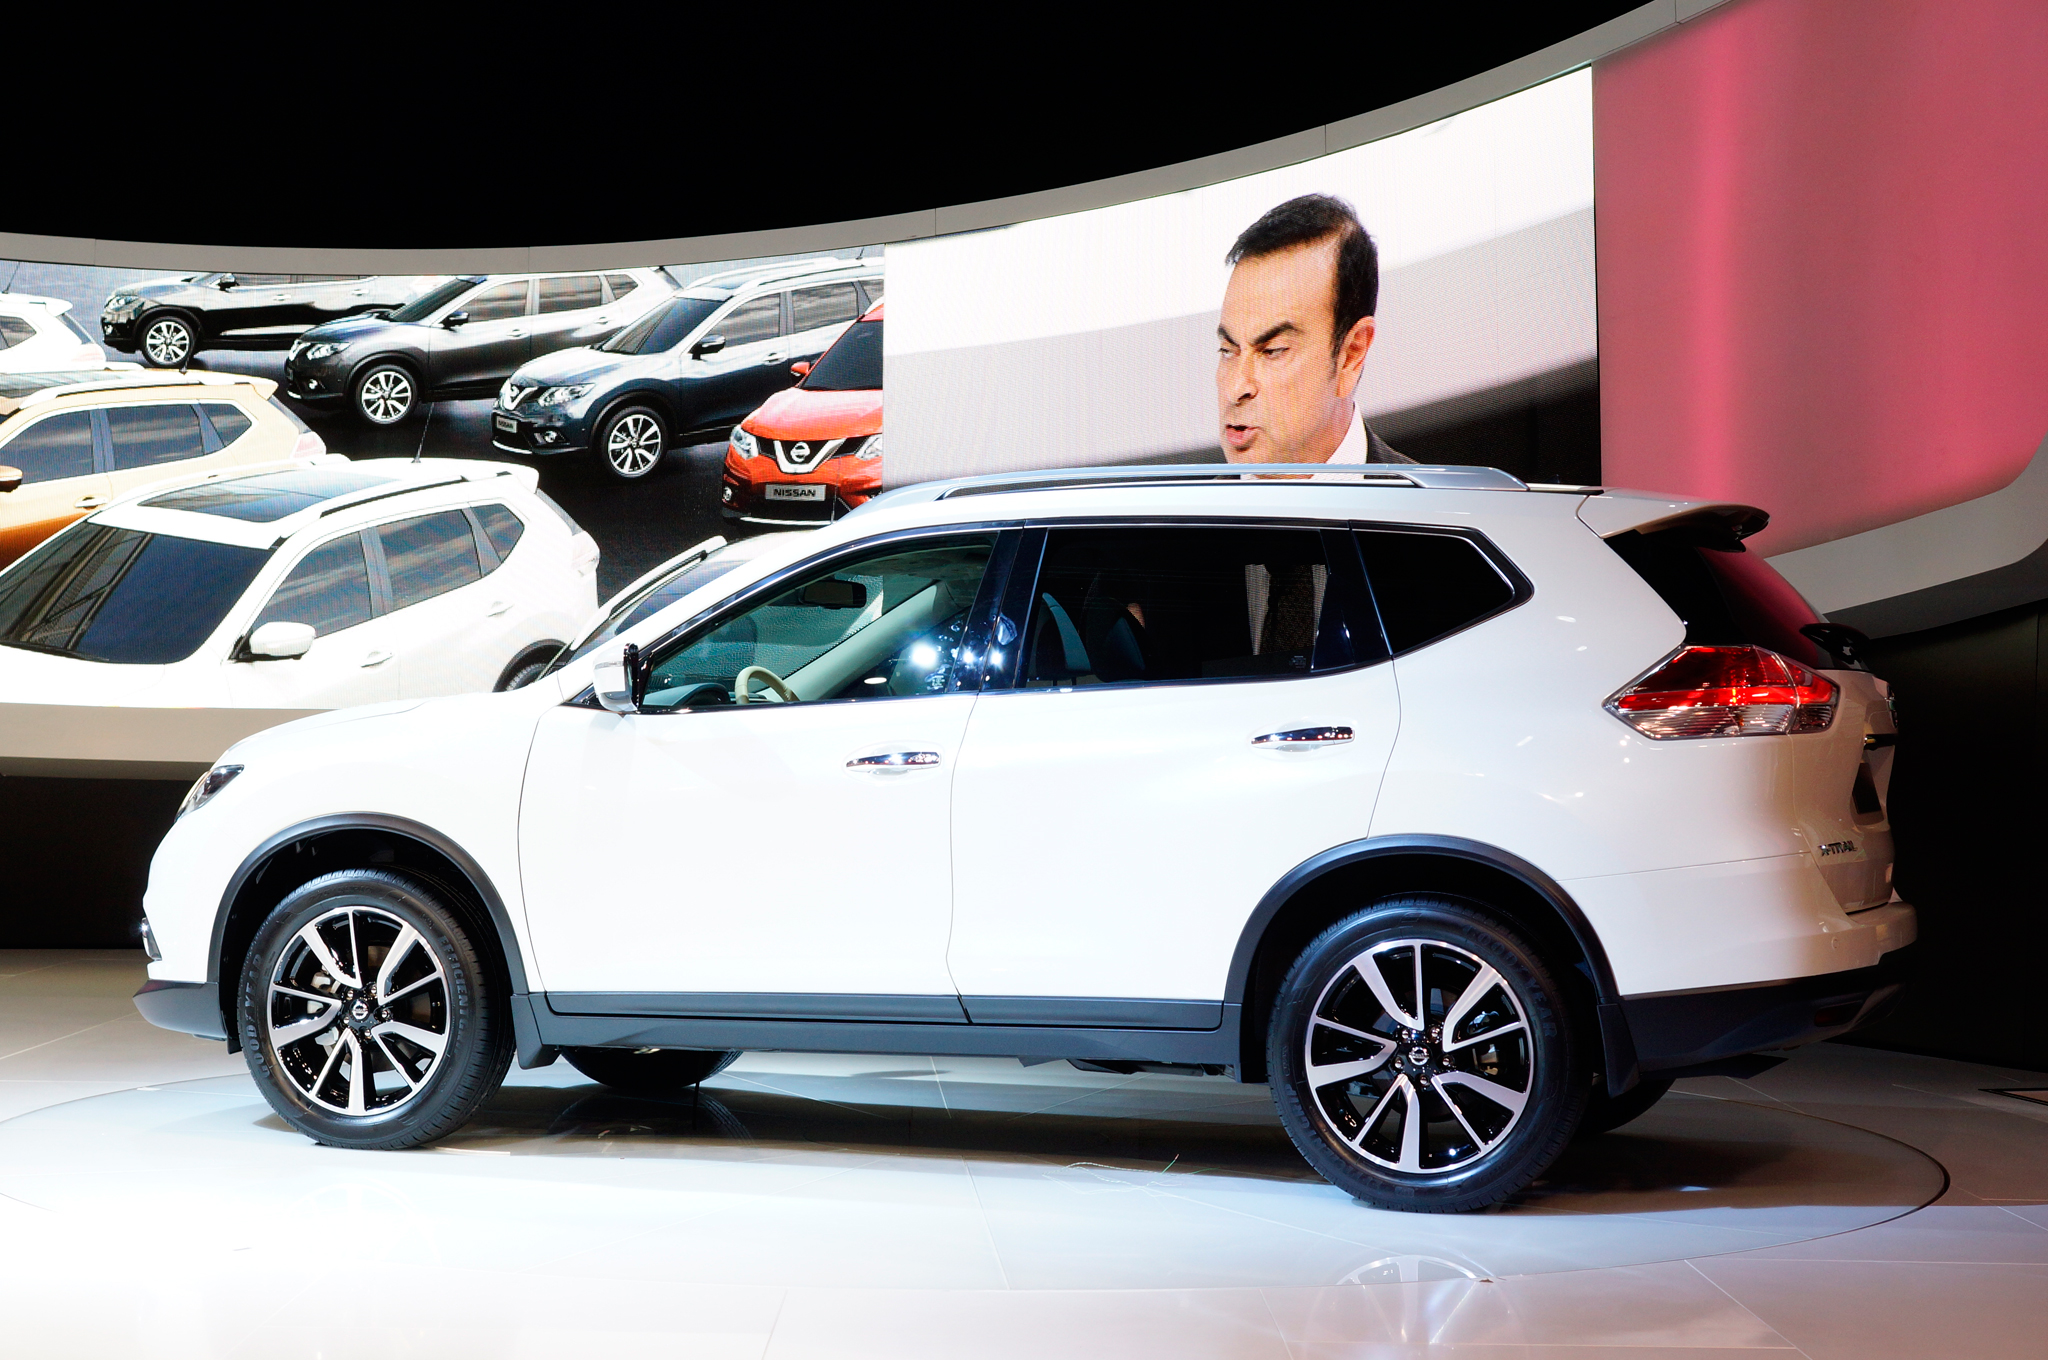 Nissan Rogue to Offer Third Row Seats Priced at side profile image hosting free Wallpaper